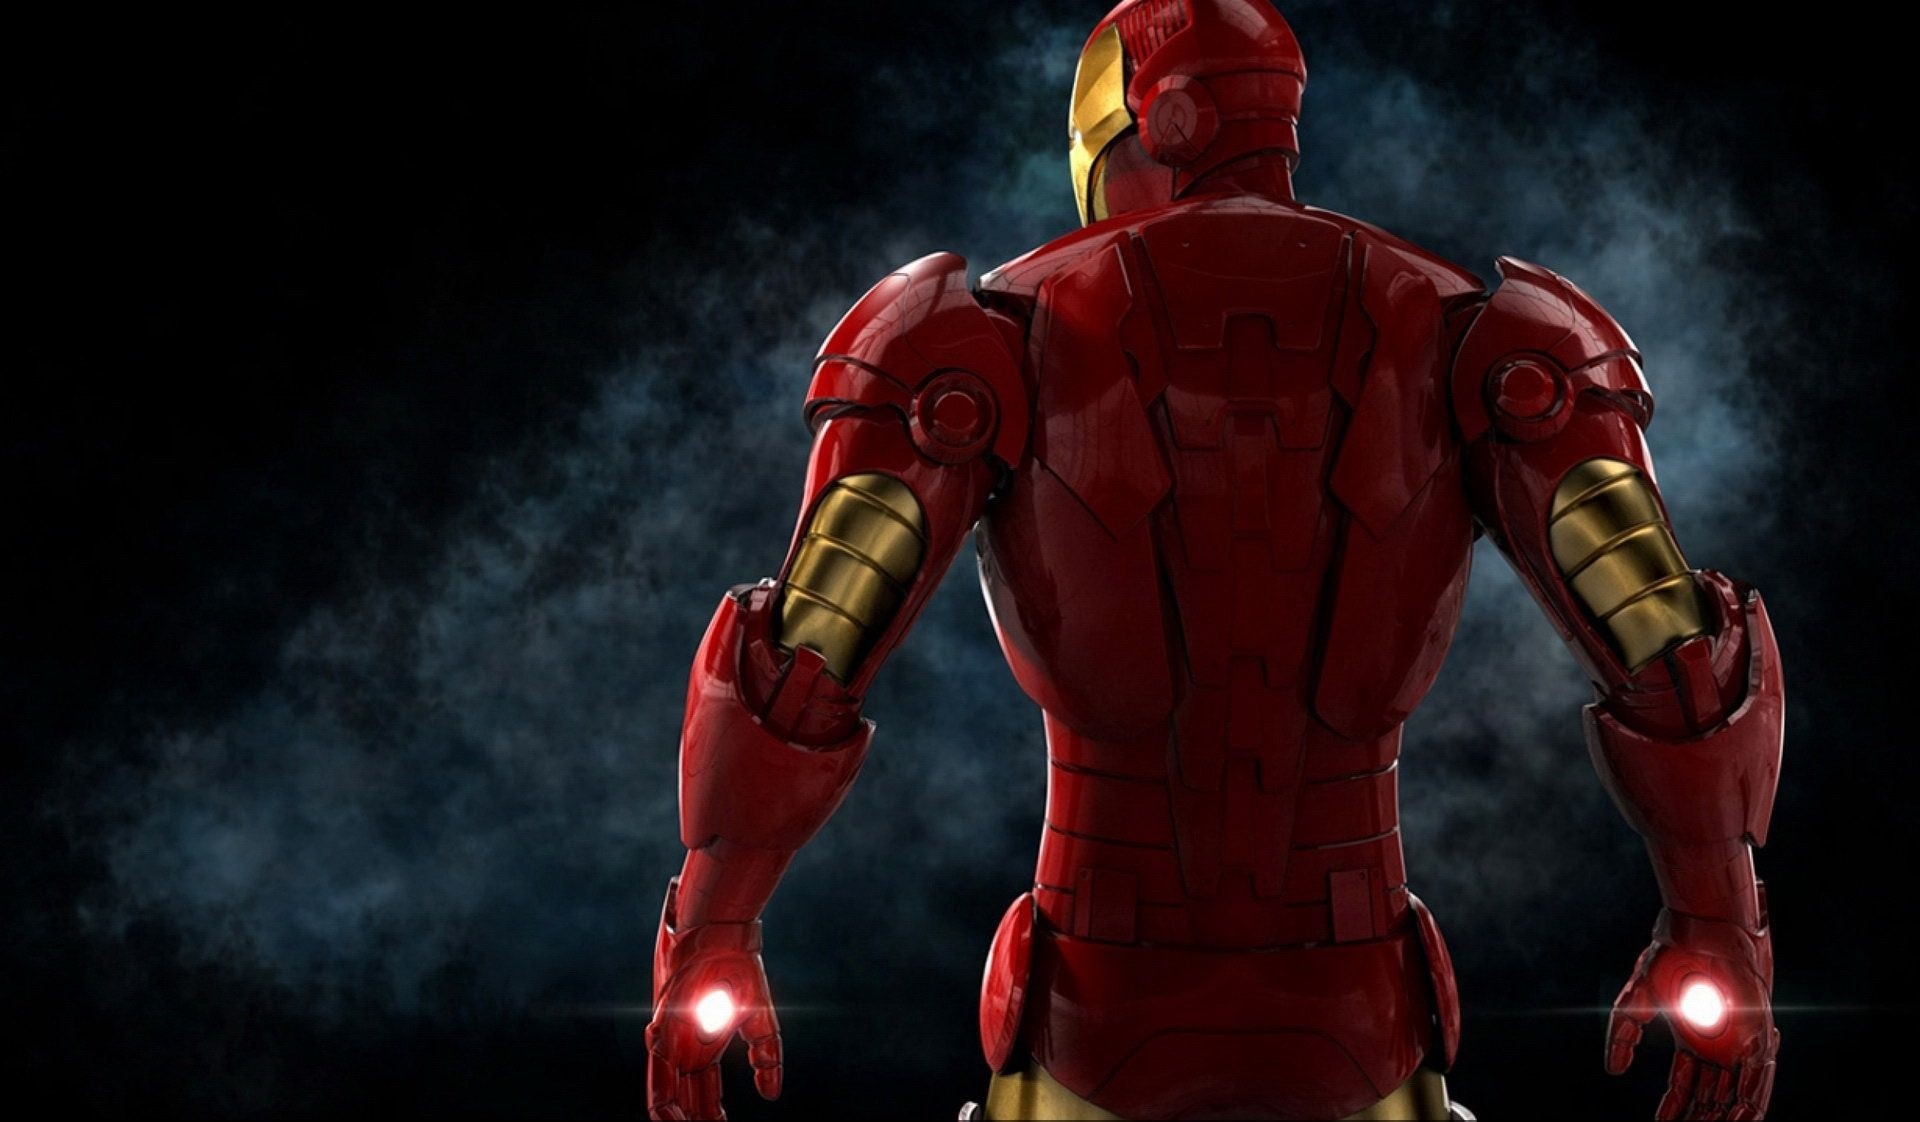 Free Superhero Wallpapers For Desktop: Marvel HD Wallpapers 1080p (74+ Images